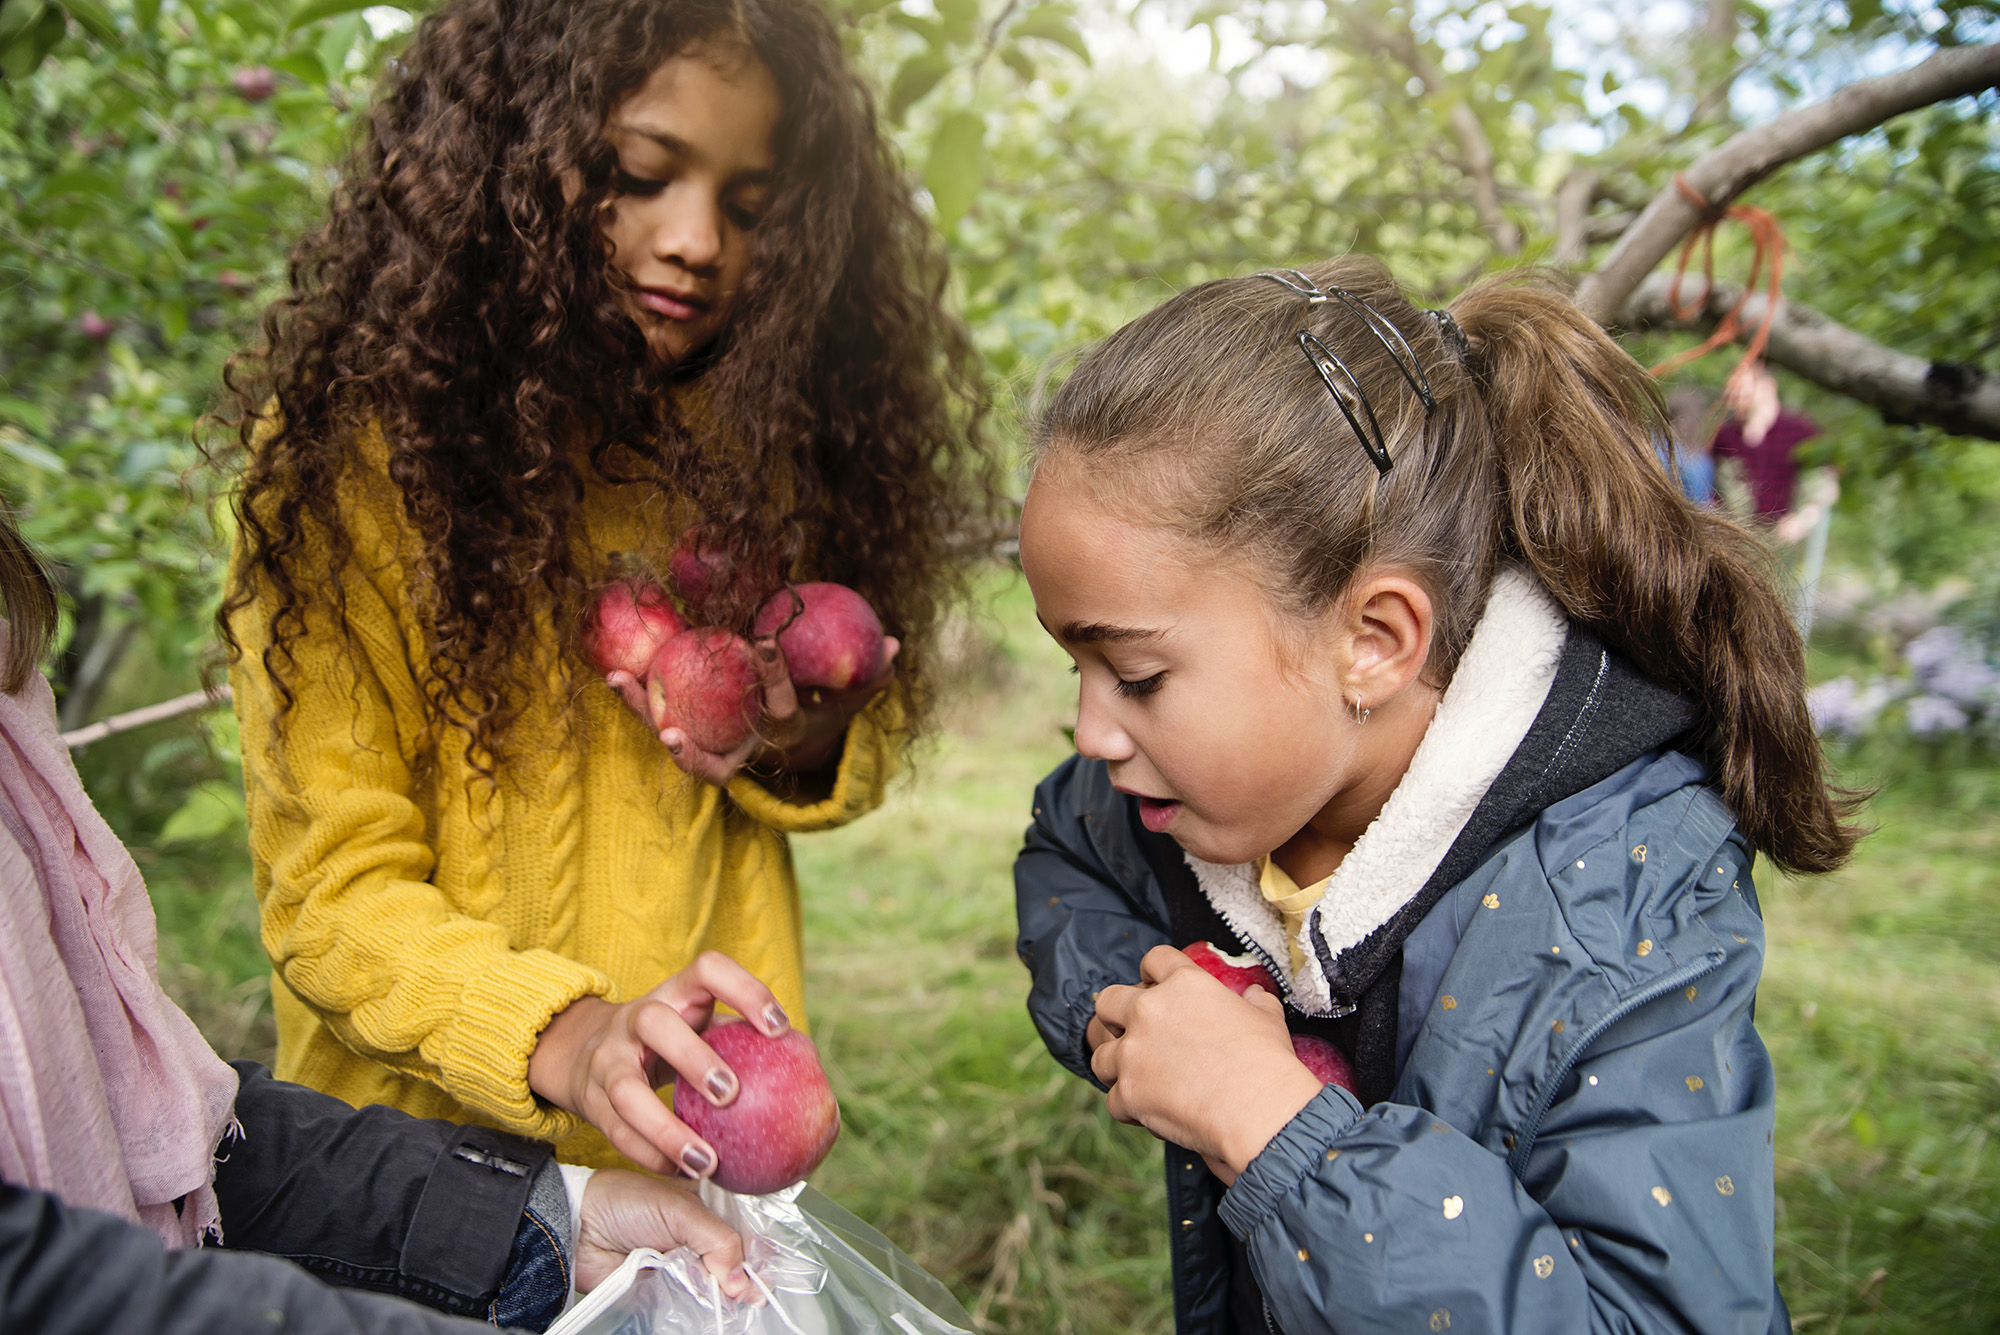 Two girls pick apples at apple orchard